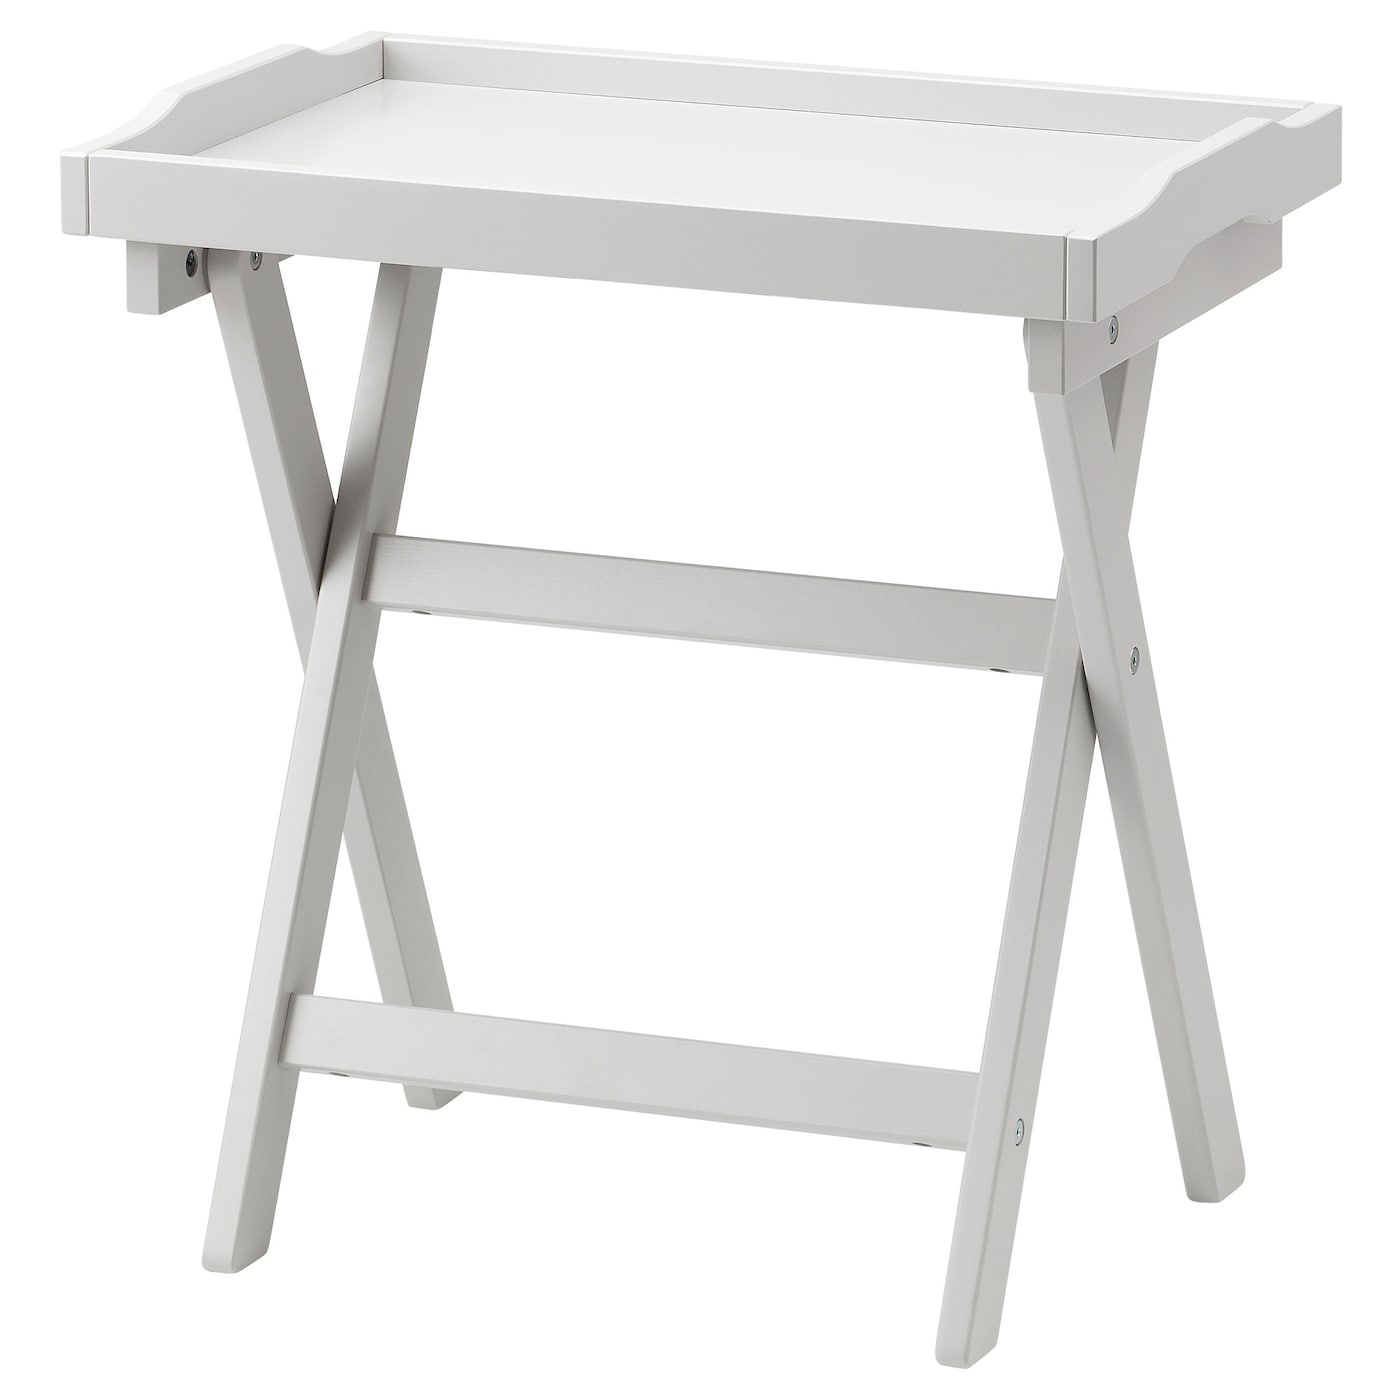 maryd tray table grey 58 x 38 x 58 cm ikea. Black Bedroom Furniture Sets. Home Design Ideas